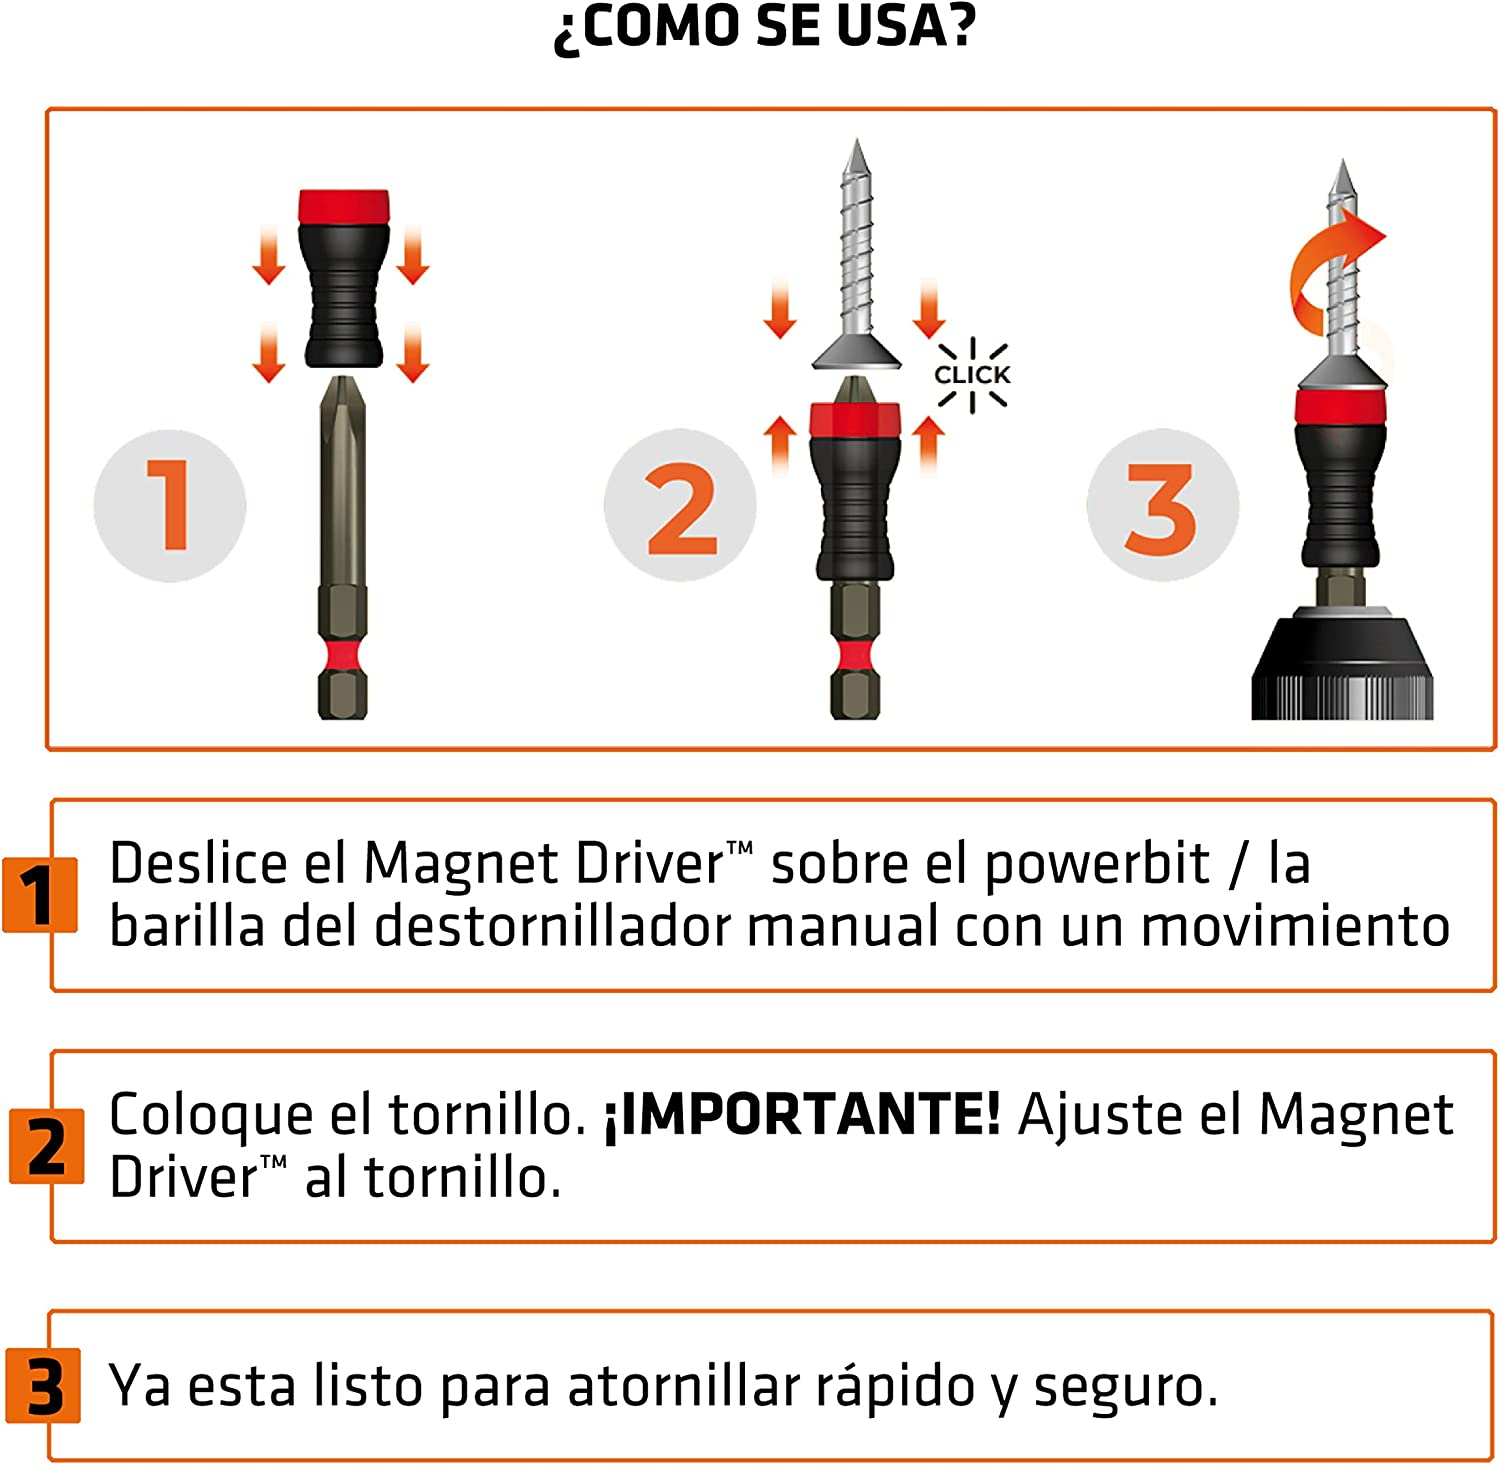 Adaptable to Any Screwdriver or Drill. The Great Invention That Holds The Screws and Allows Screw with One Hand Bit Holder Magnetic Magnet Driver/® B50